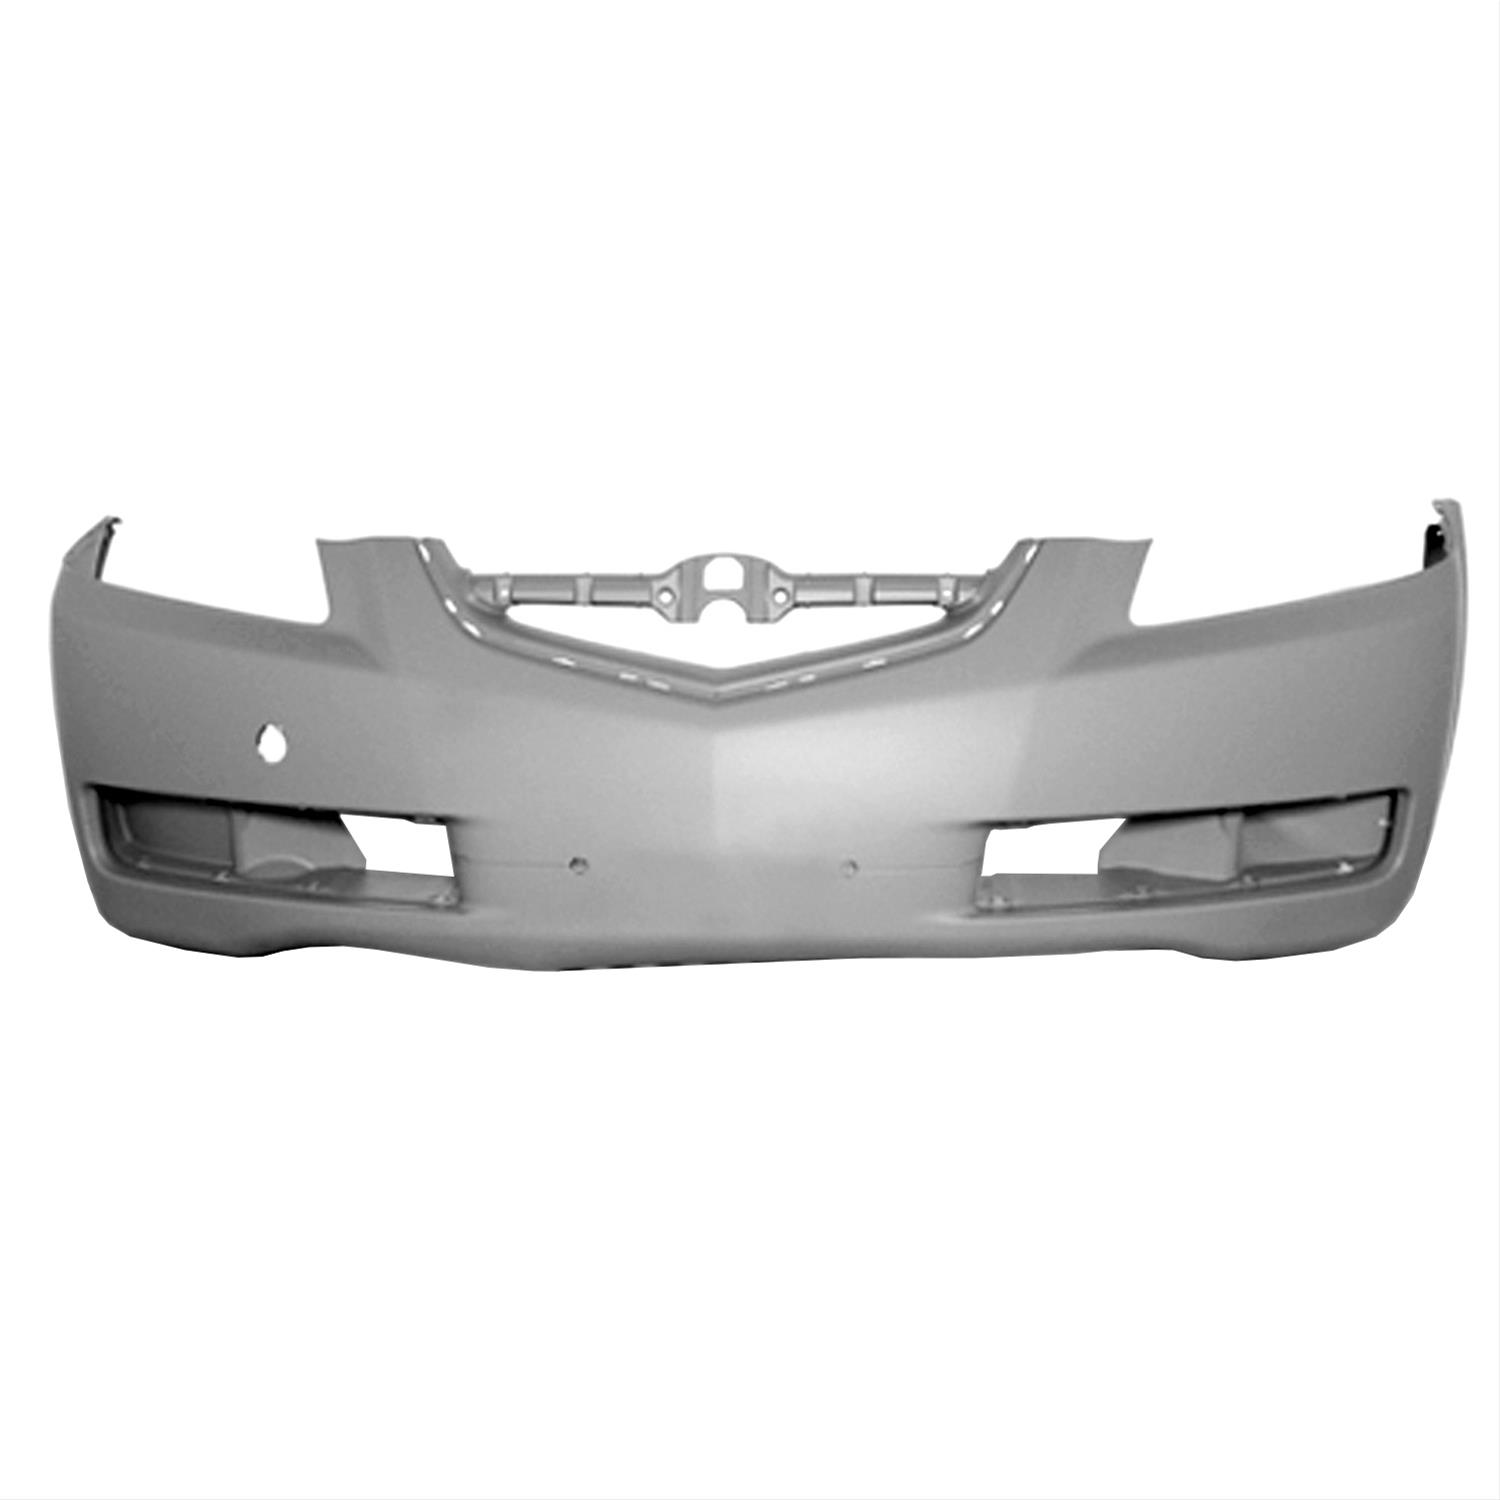 04 06 Acura Tl: BUMPER COVER; FRONT; 04-06 TL WO LOGO Fits Acura